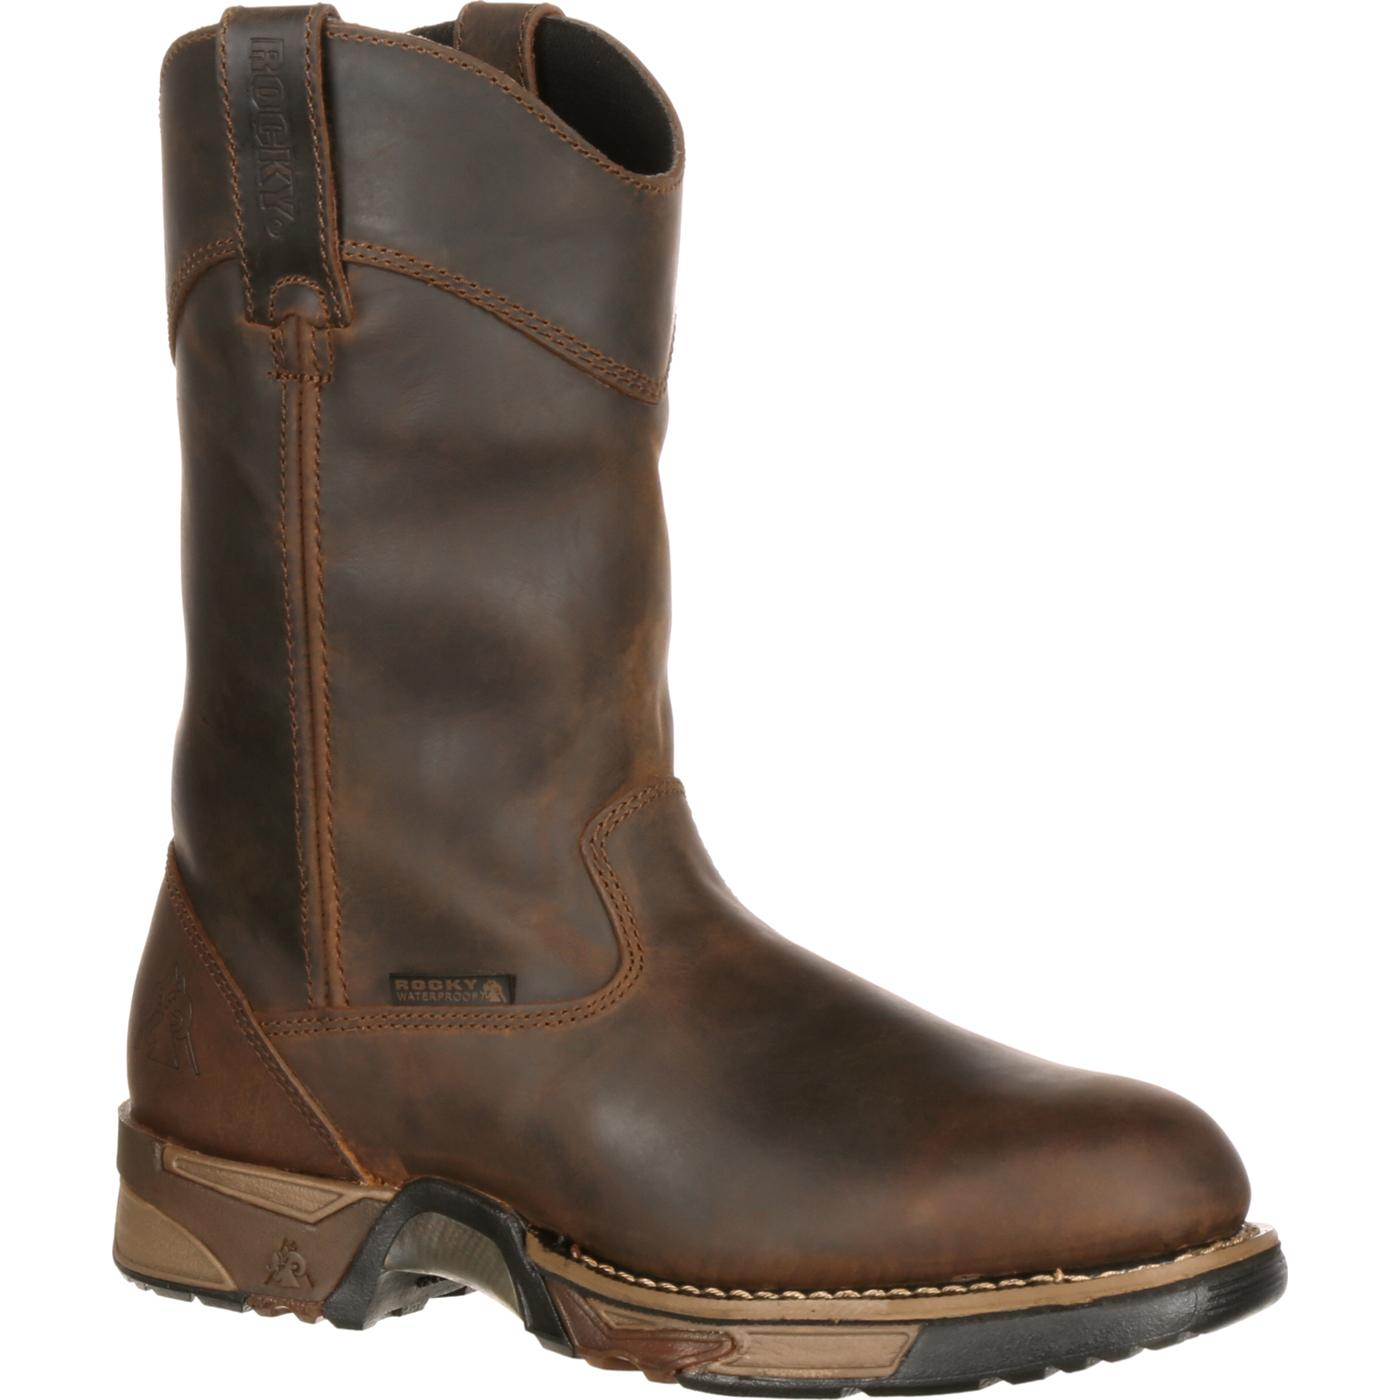 Boots from Rocky Brands,Hunting,Work,Steel Toe. Check out our Off-season sale prices on select Rocky Boots. Prices good for a limited time only.